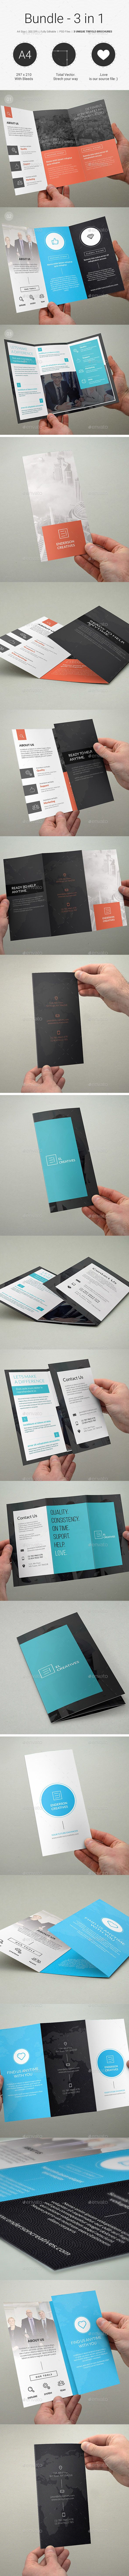 Bundle  Trifold Business Brochures - 30  — PSD Template #deal #executive • Download ➝ https://graphicriver.net/item/bundle-trifold-business-brochures-30/18089898?ref=pxcr